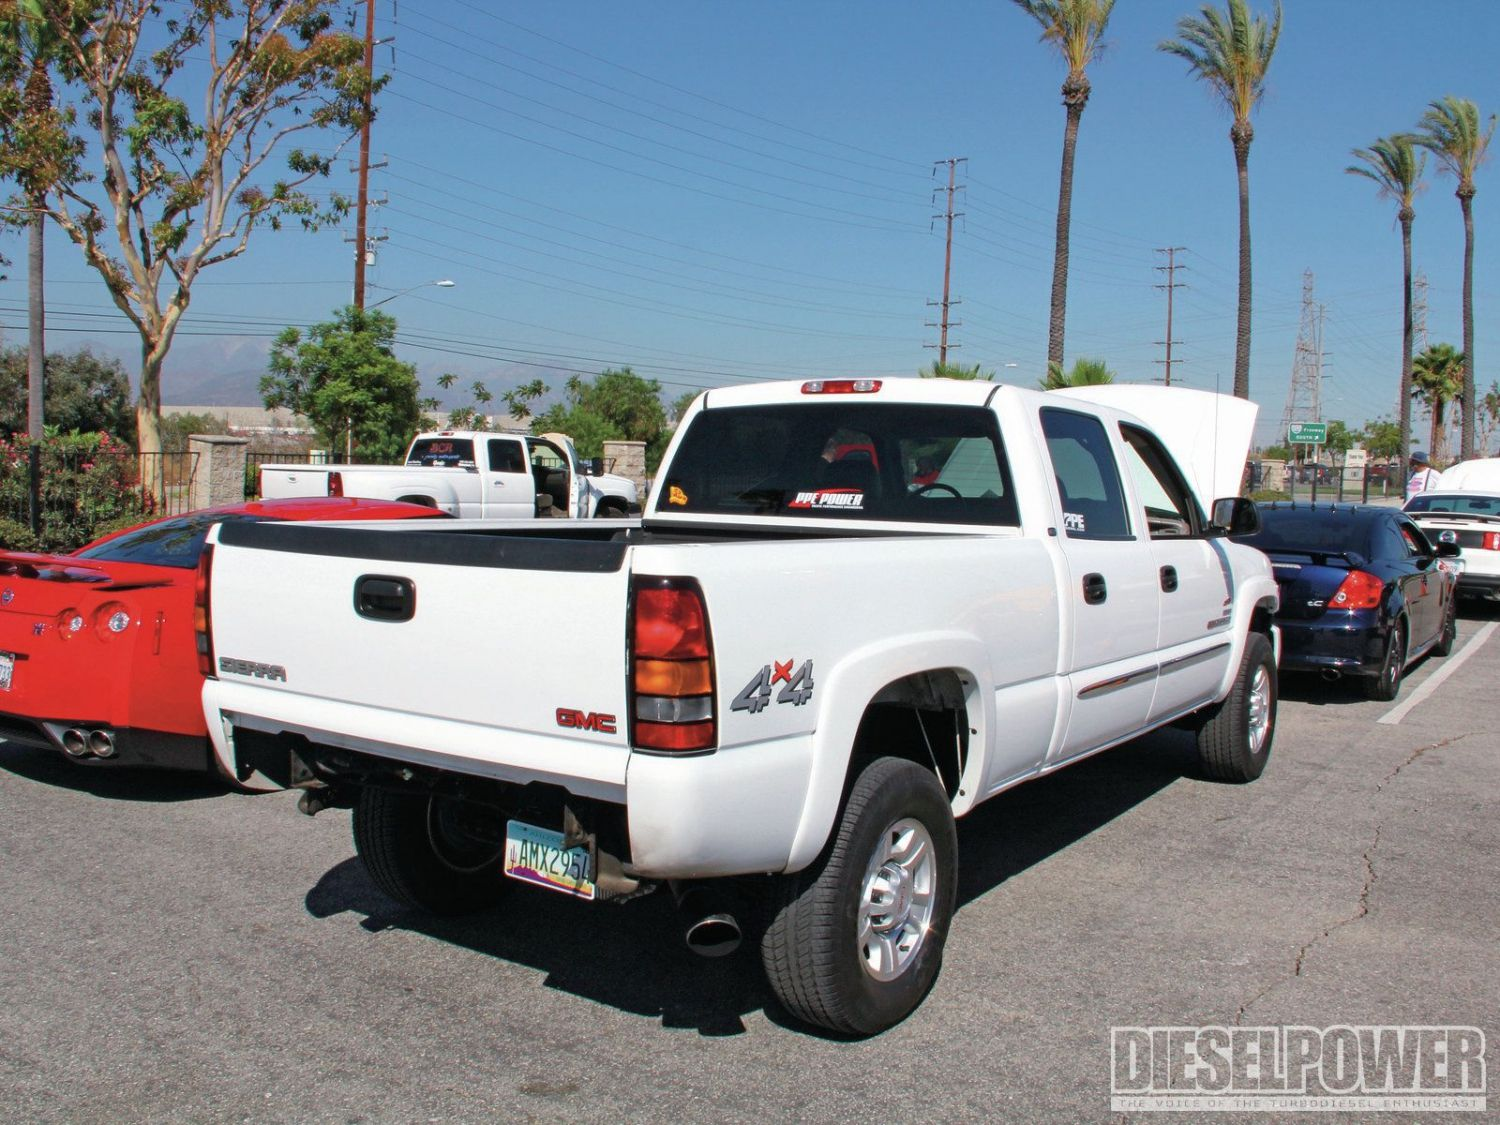 Check Out The 10 Best S In Used Sel Trucks As We Show You What Can Get A Steal Of Deal On See Ford Dodge Or Bmw Could